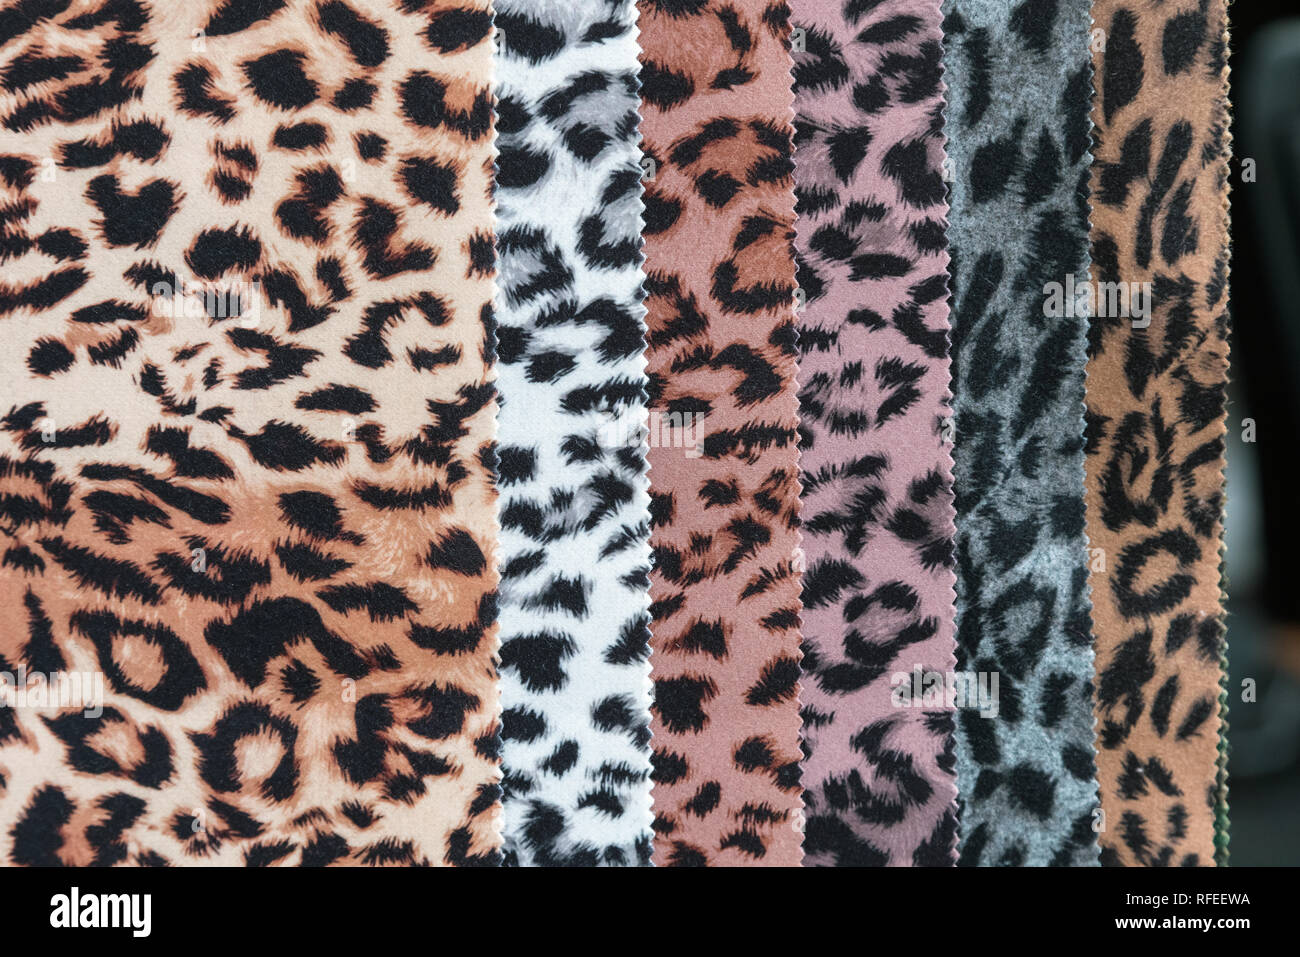 Fabric and textiles samples in a factory shop or store that mimic animal skin. Different colors and patterns on the market. Industrial fabrics. - Stock Image